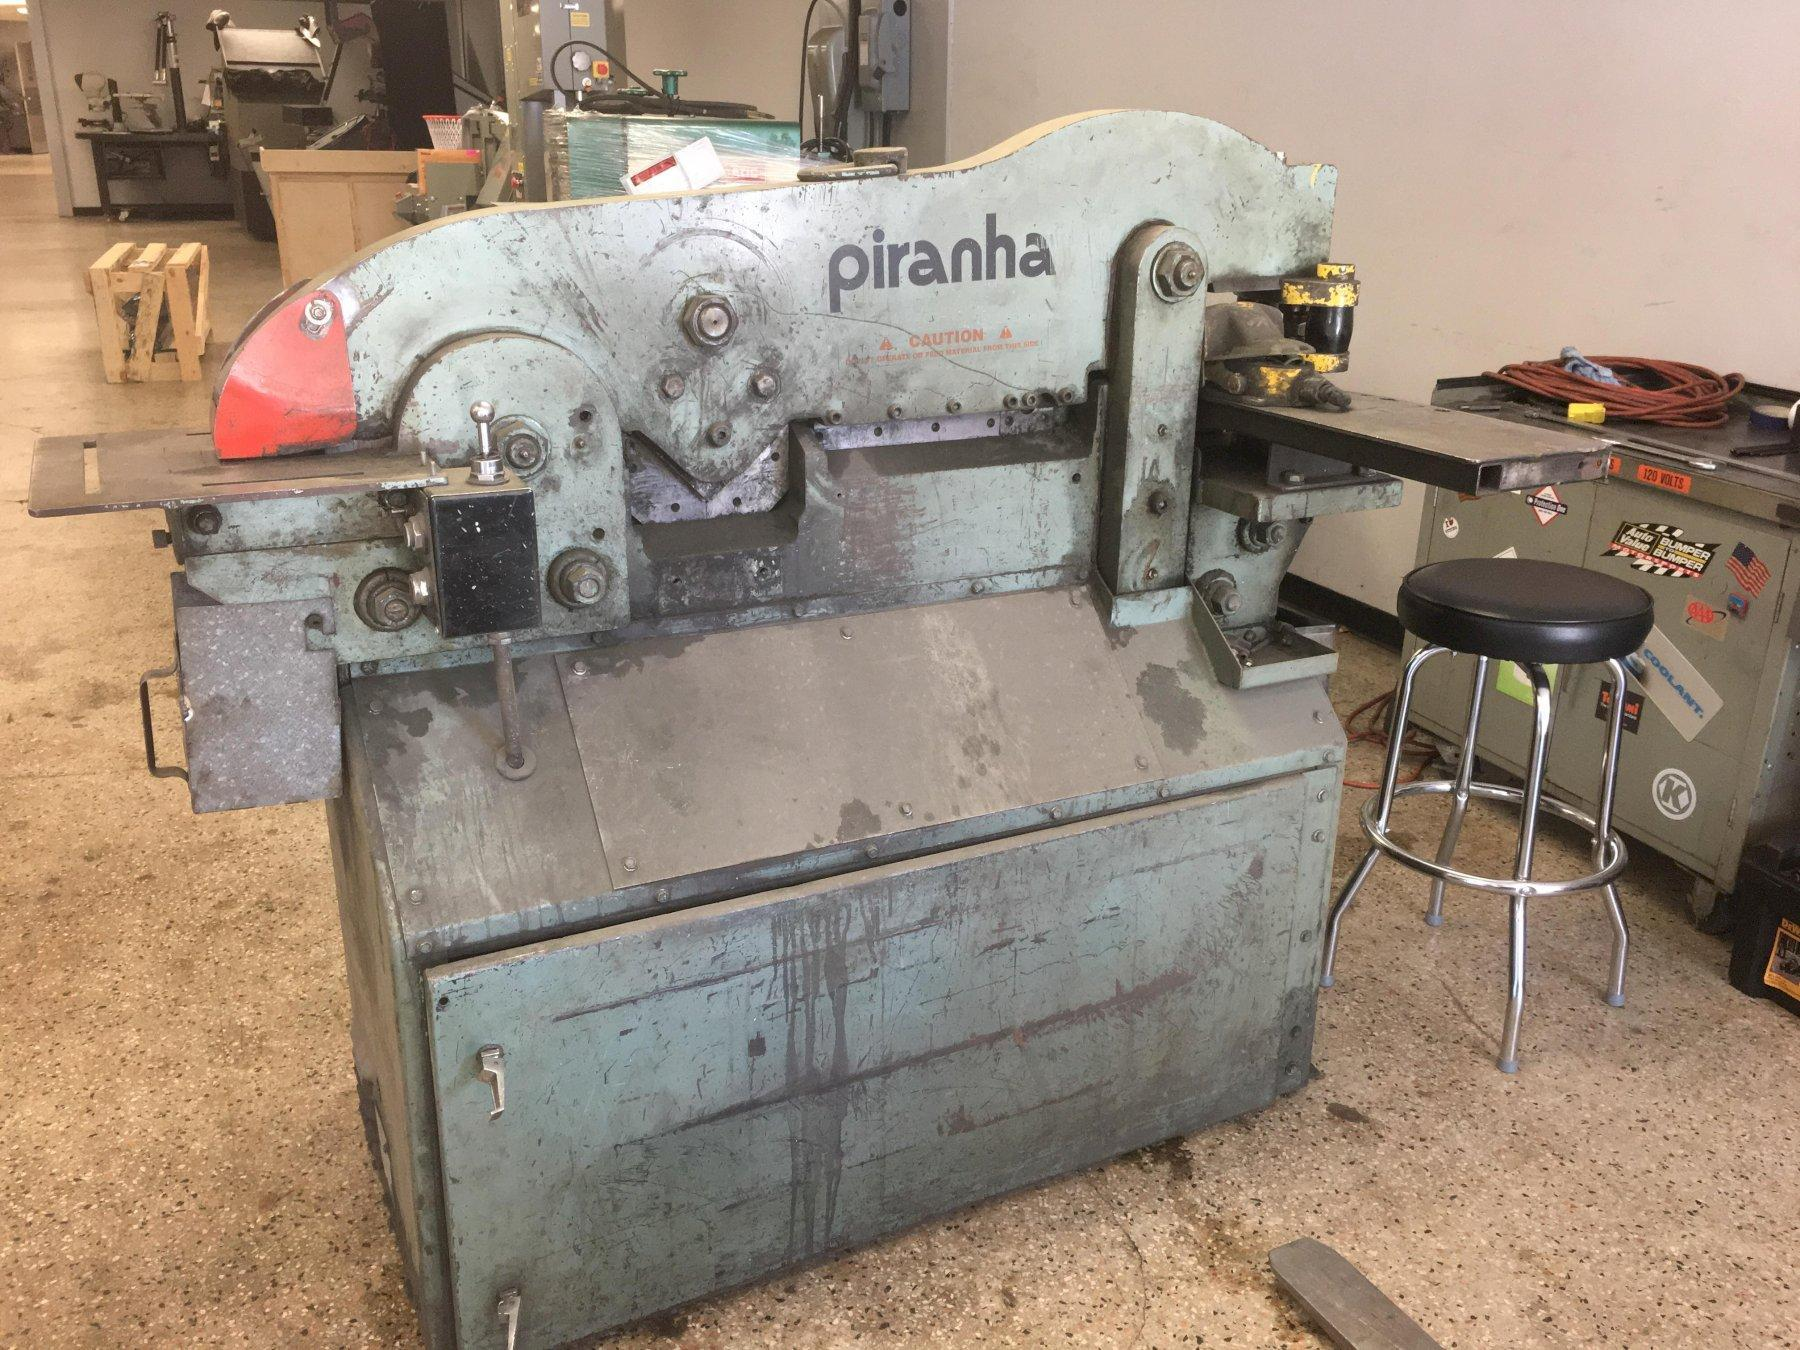 Piranha Model P3 50 Ton Hydraulic Iron Worker, S/N P3-2752.